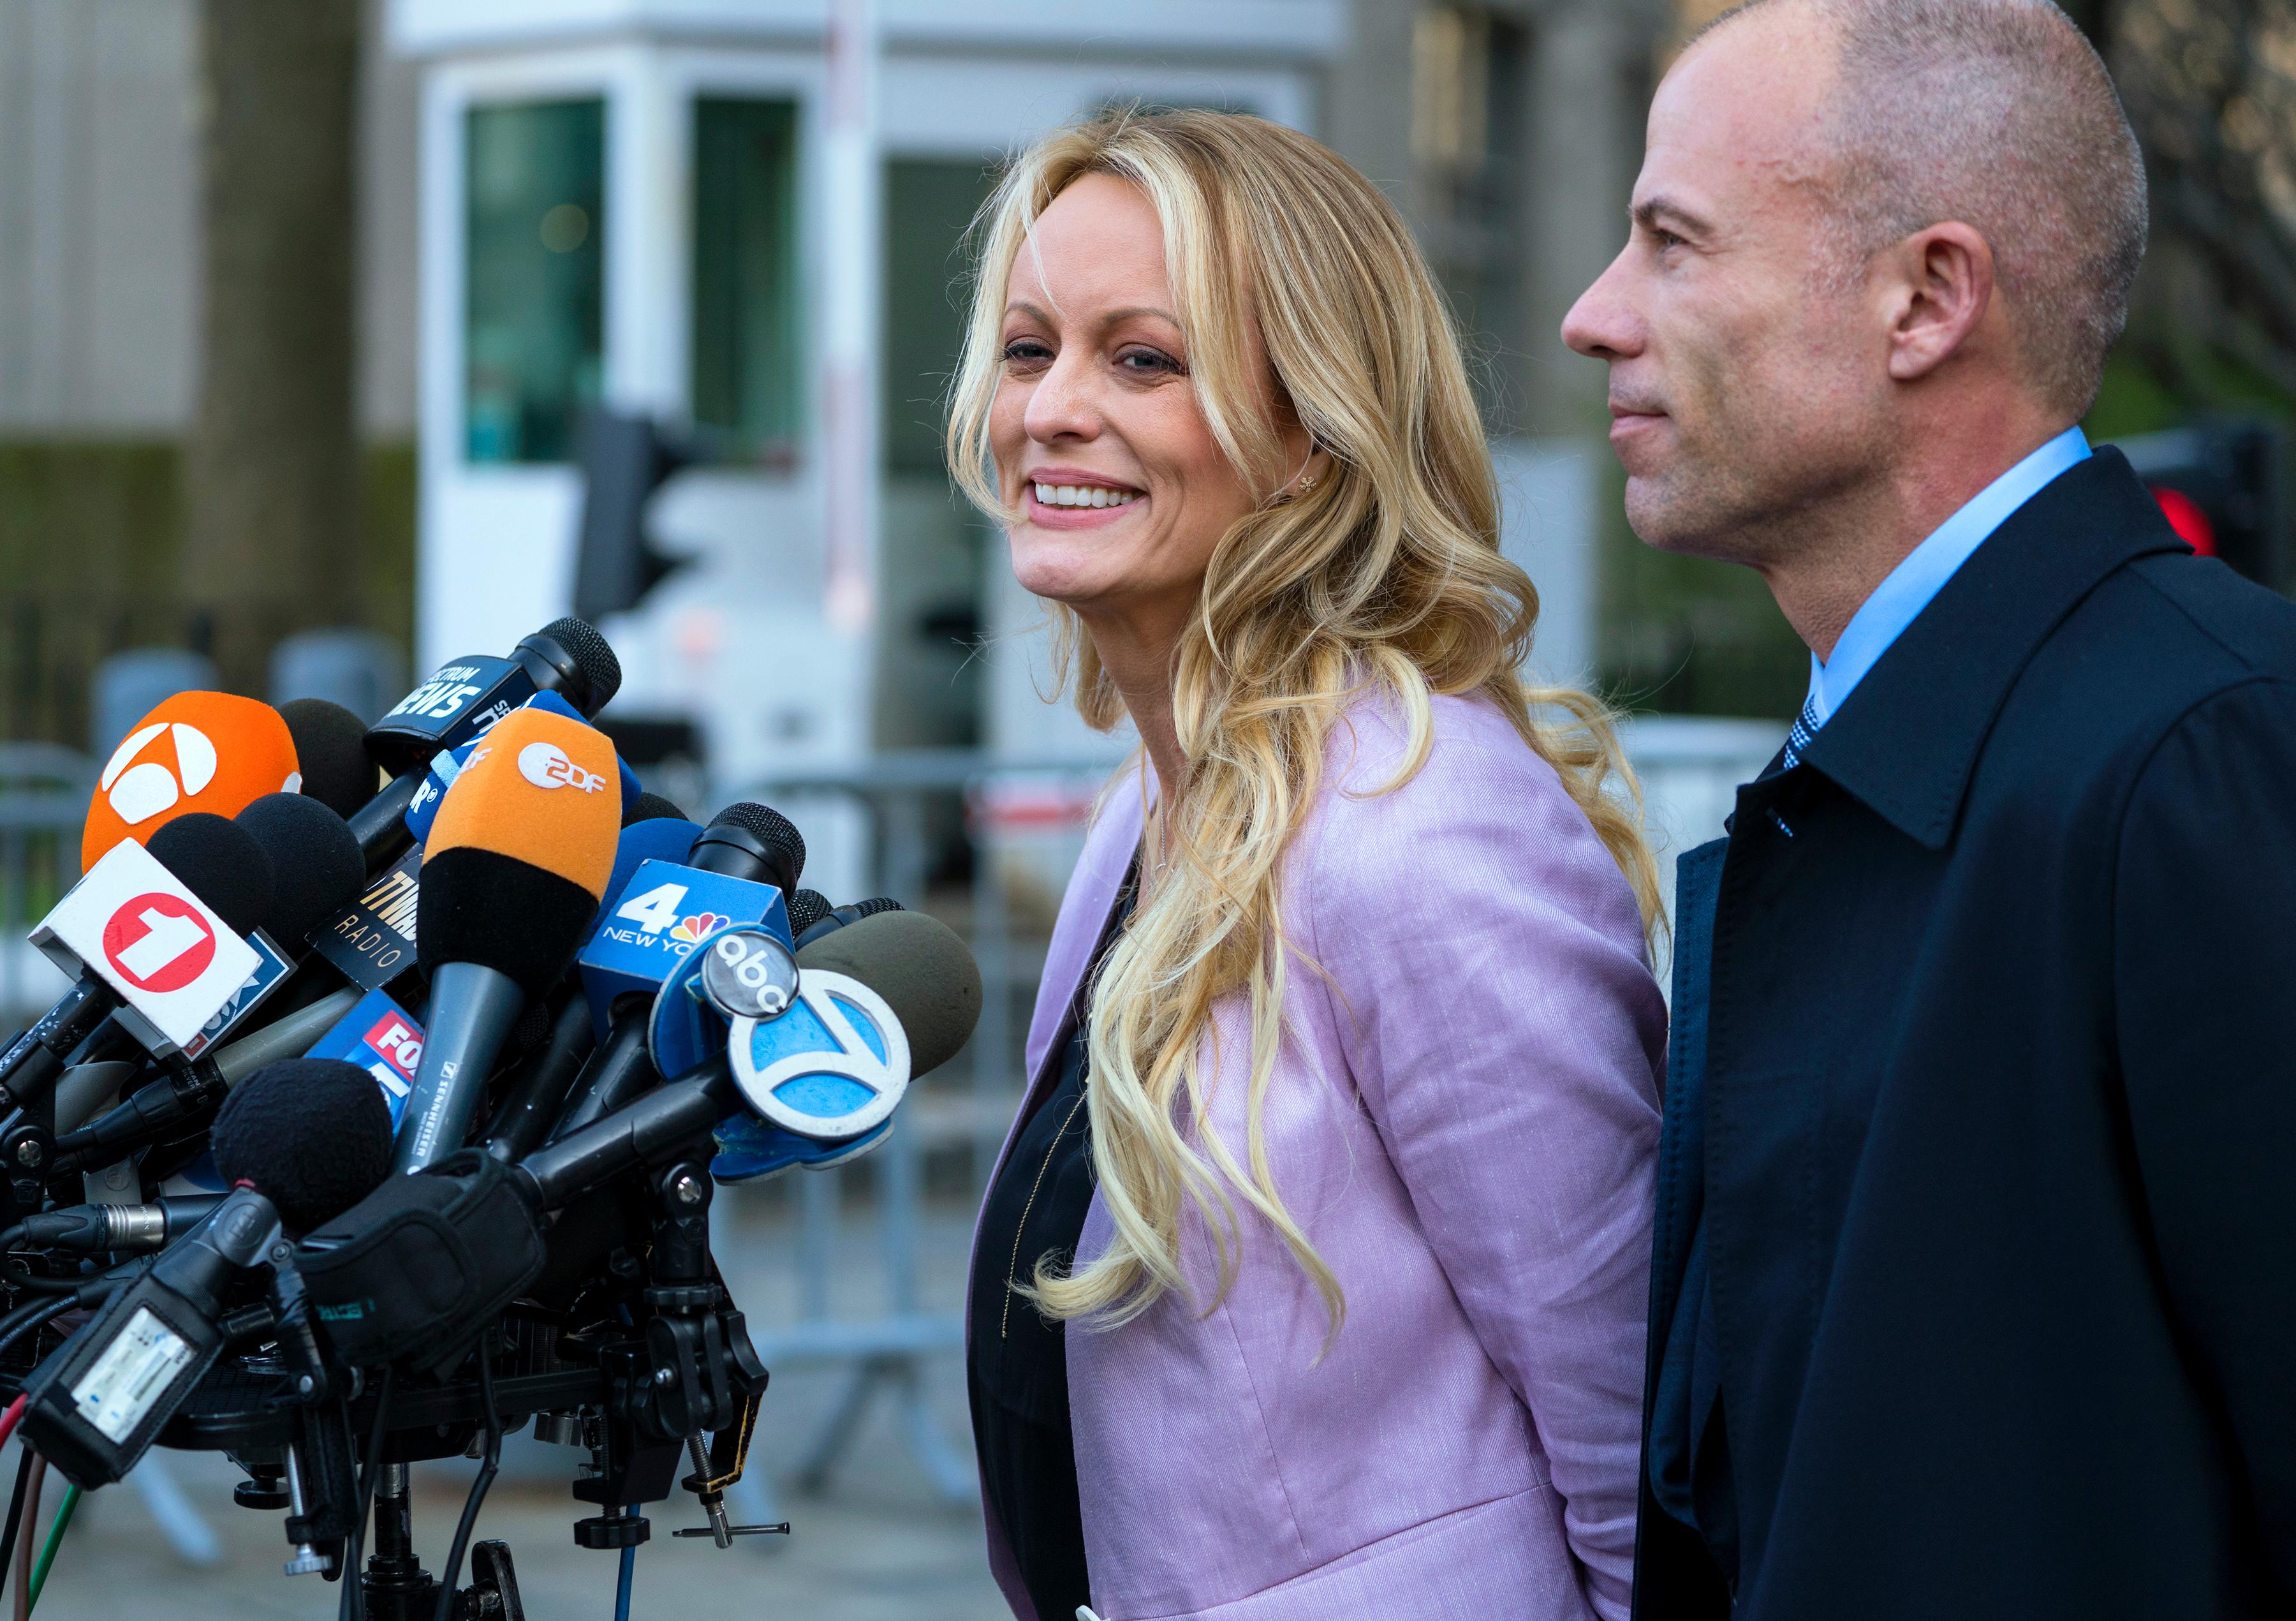 Adult film actress Stormy Daniels speaks to members of the media after a hearing at federal court, Monday, April 16, 2018, in New York, as she is accompanied by her attorney Michael Avenatti.  A judge considering how to handle records seized in an FBI raid on the home and office of Michael Cohen, President Donald Trump's personal attorney, wrapped up a hearing into the matter Monday without making a final decision. The search sought information on a variety of matters, including a $130,000 payment made to Daniels, who alleges she had sex with Trump in 2006. (AP Photo/Craig Ruttle)